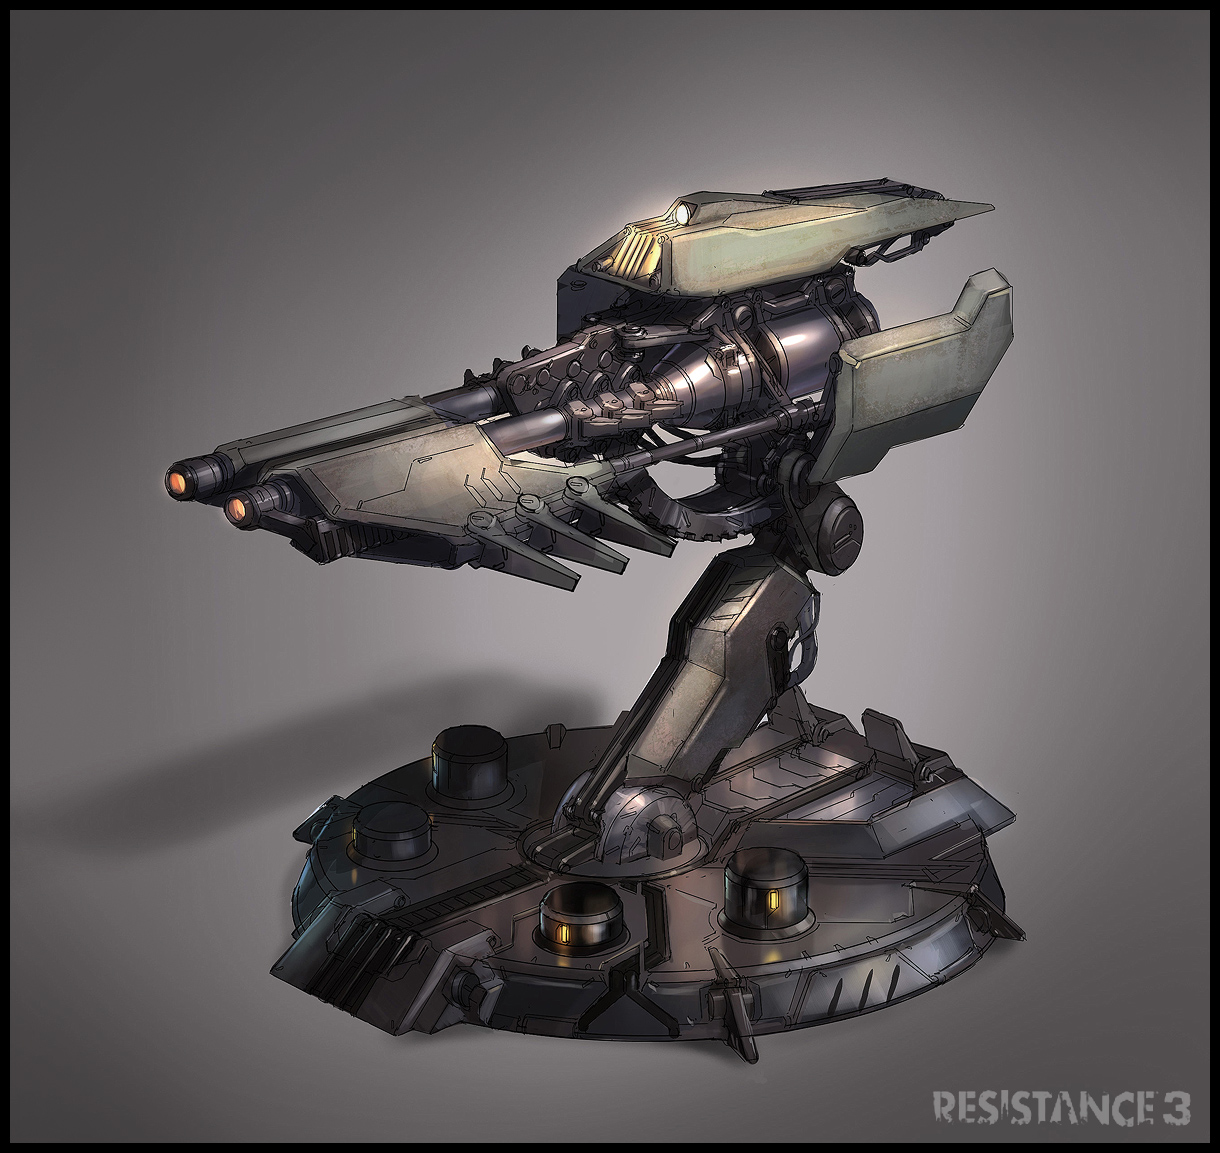 r3_breach_turret_by_meckanicalmind-d49ysra.jpg